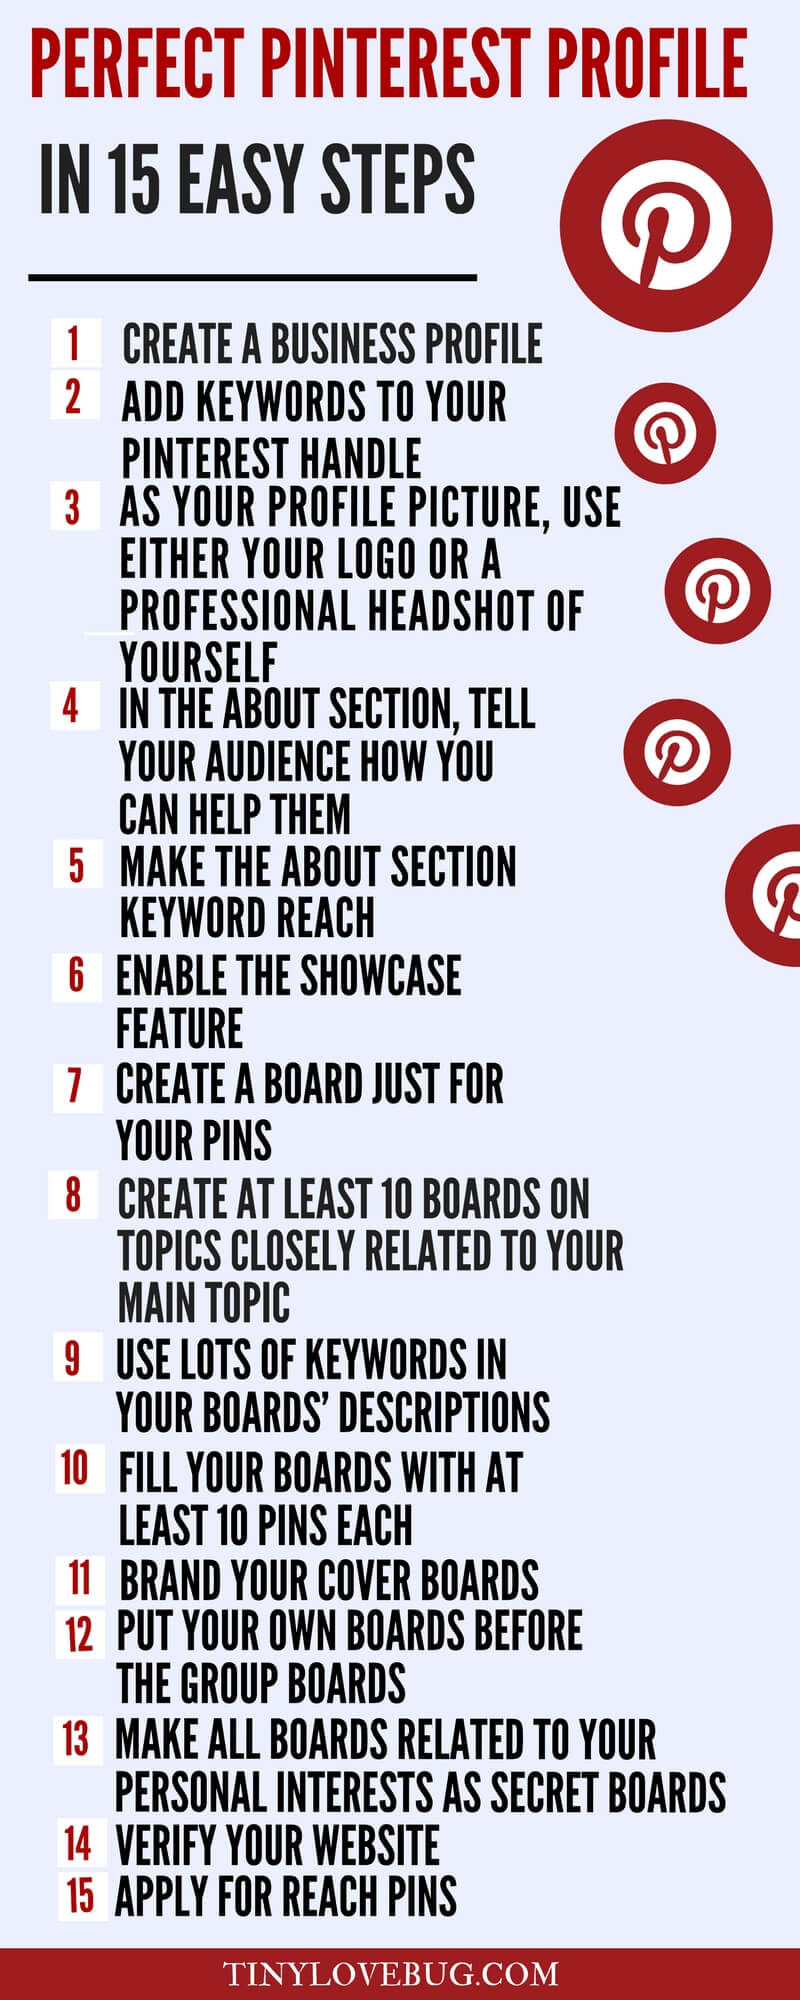 Pinterest for bloggers: Pinterest profile infographic